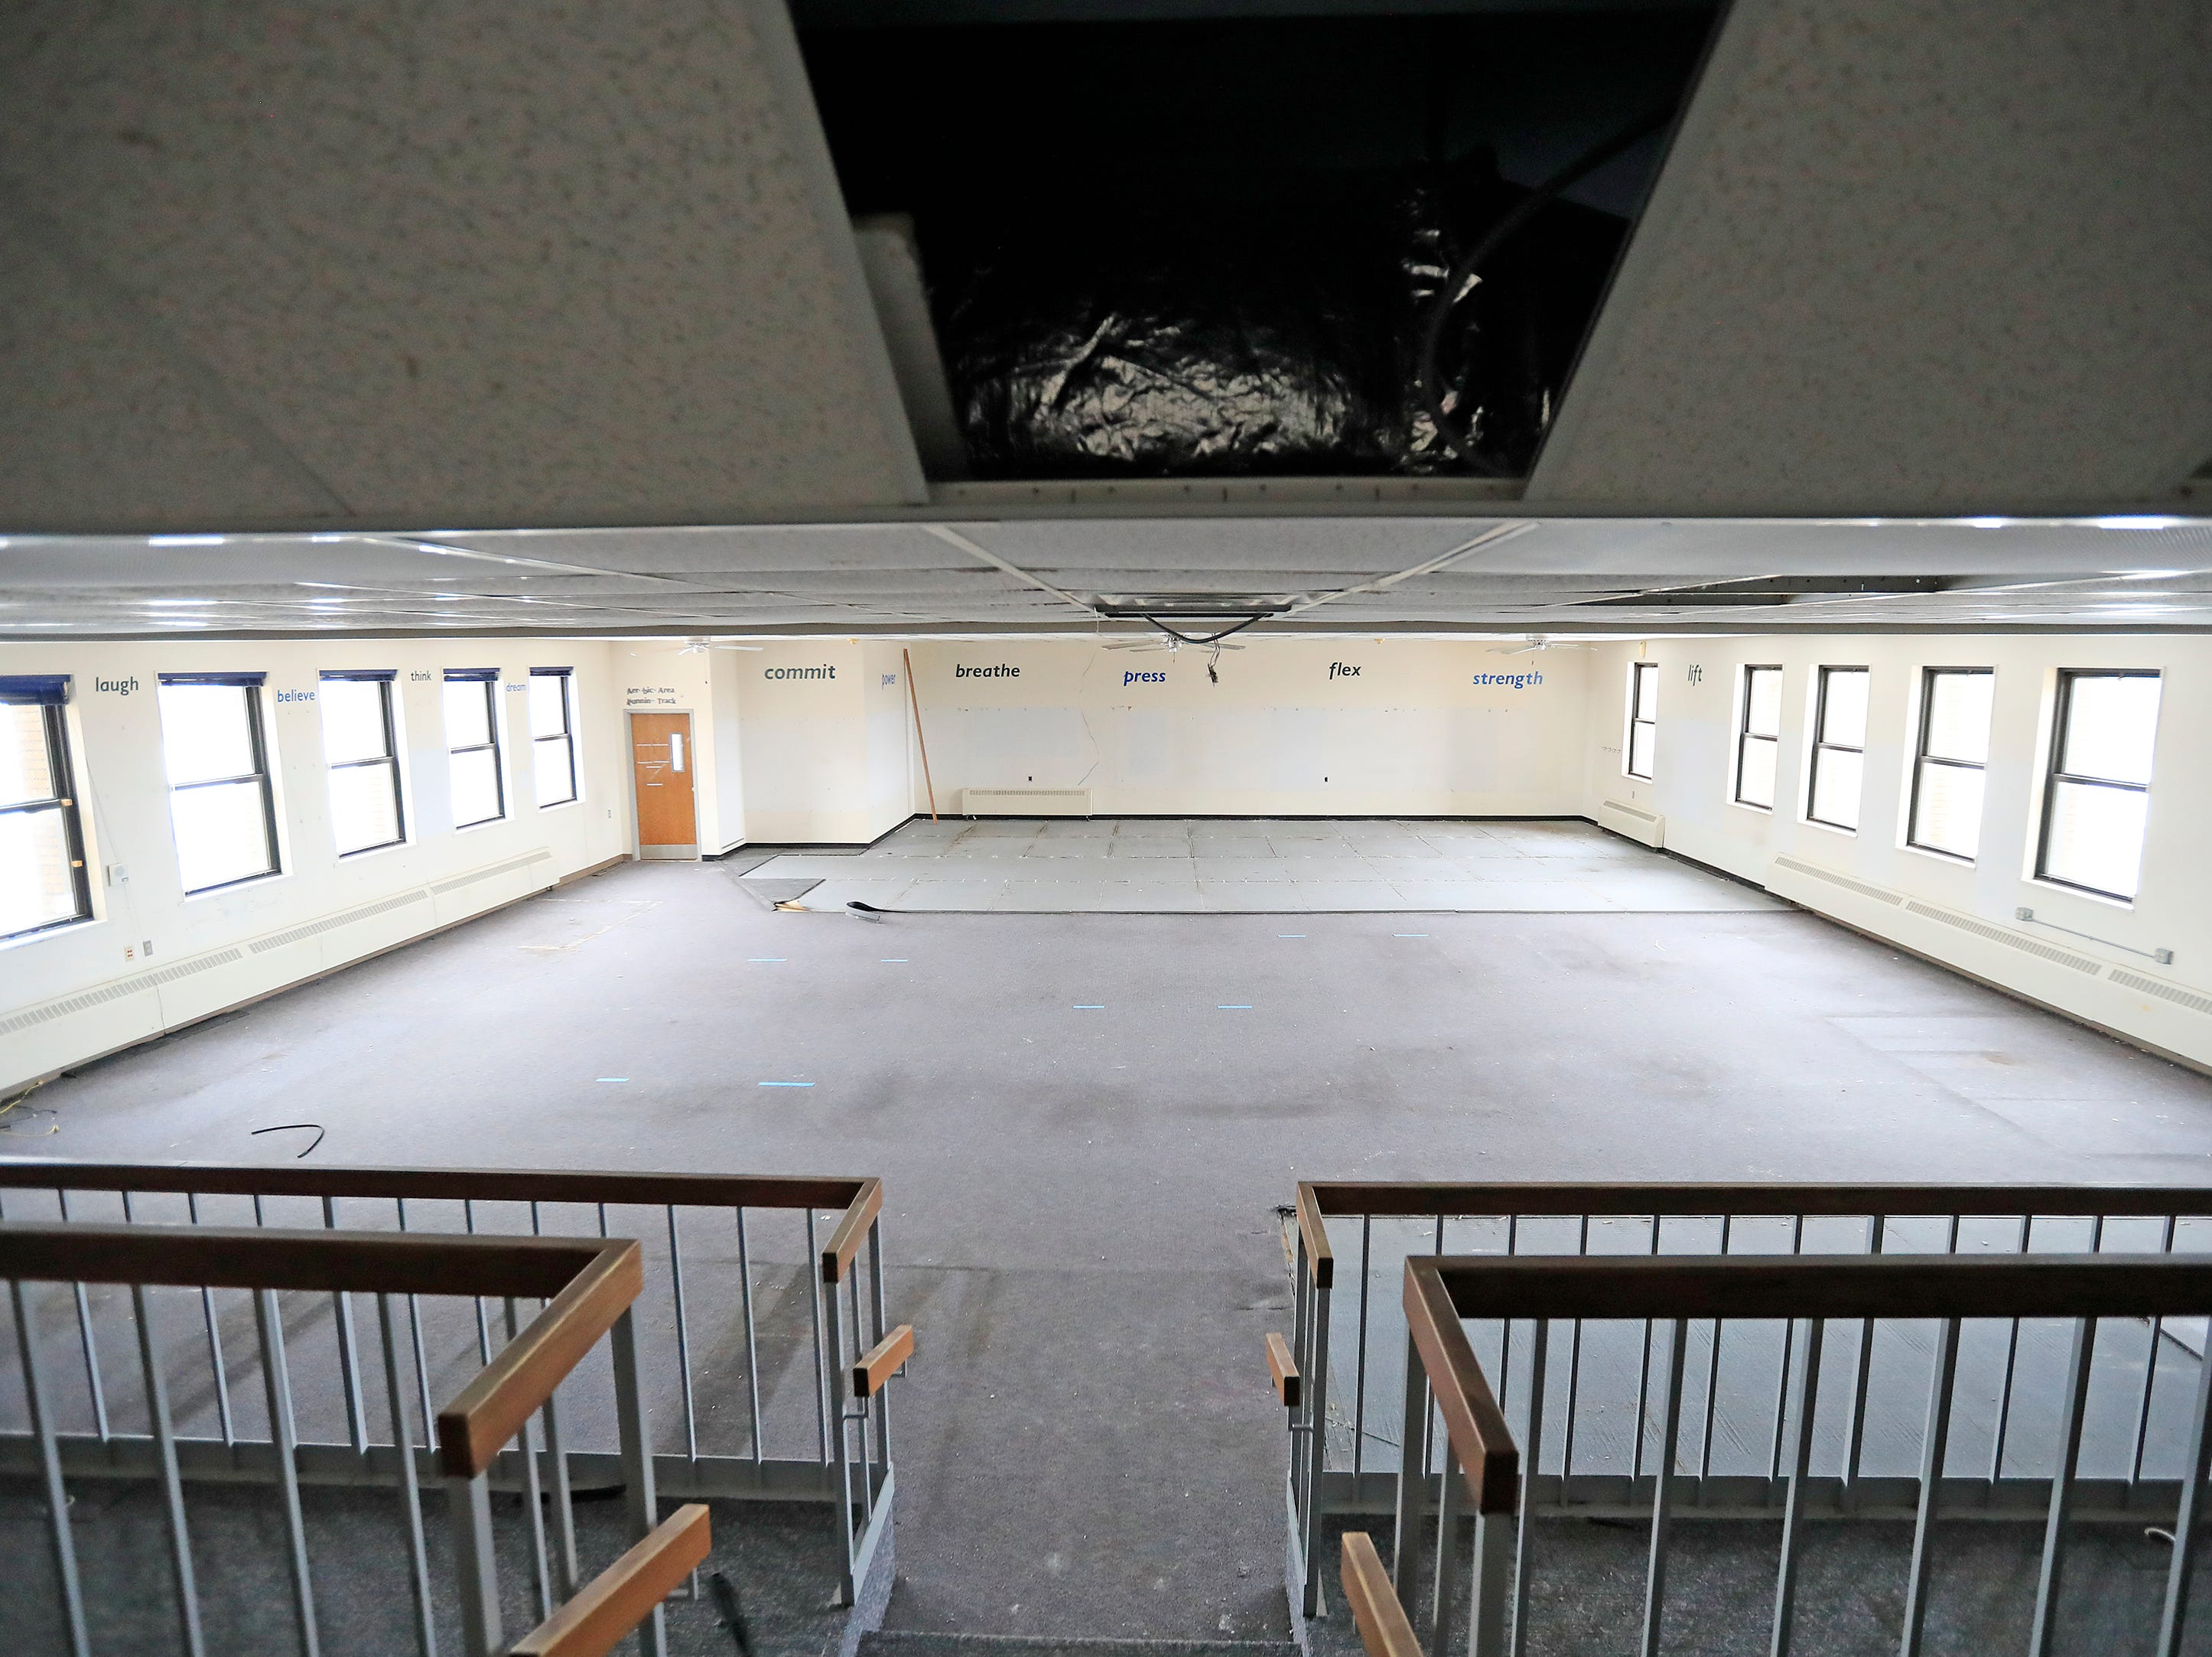 The gym area inside the former Whitney School building is shown on Tuesday, February 26, 2019 in Green Bay, Wis. The building is being converted into apartments this year.